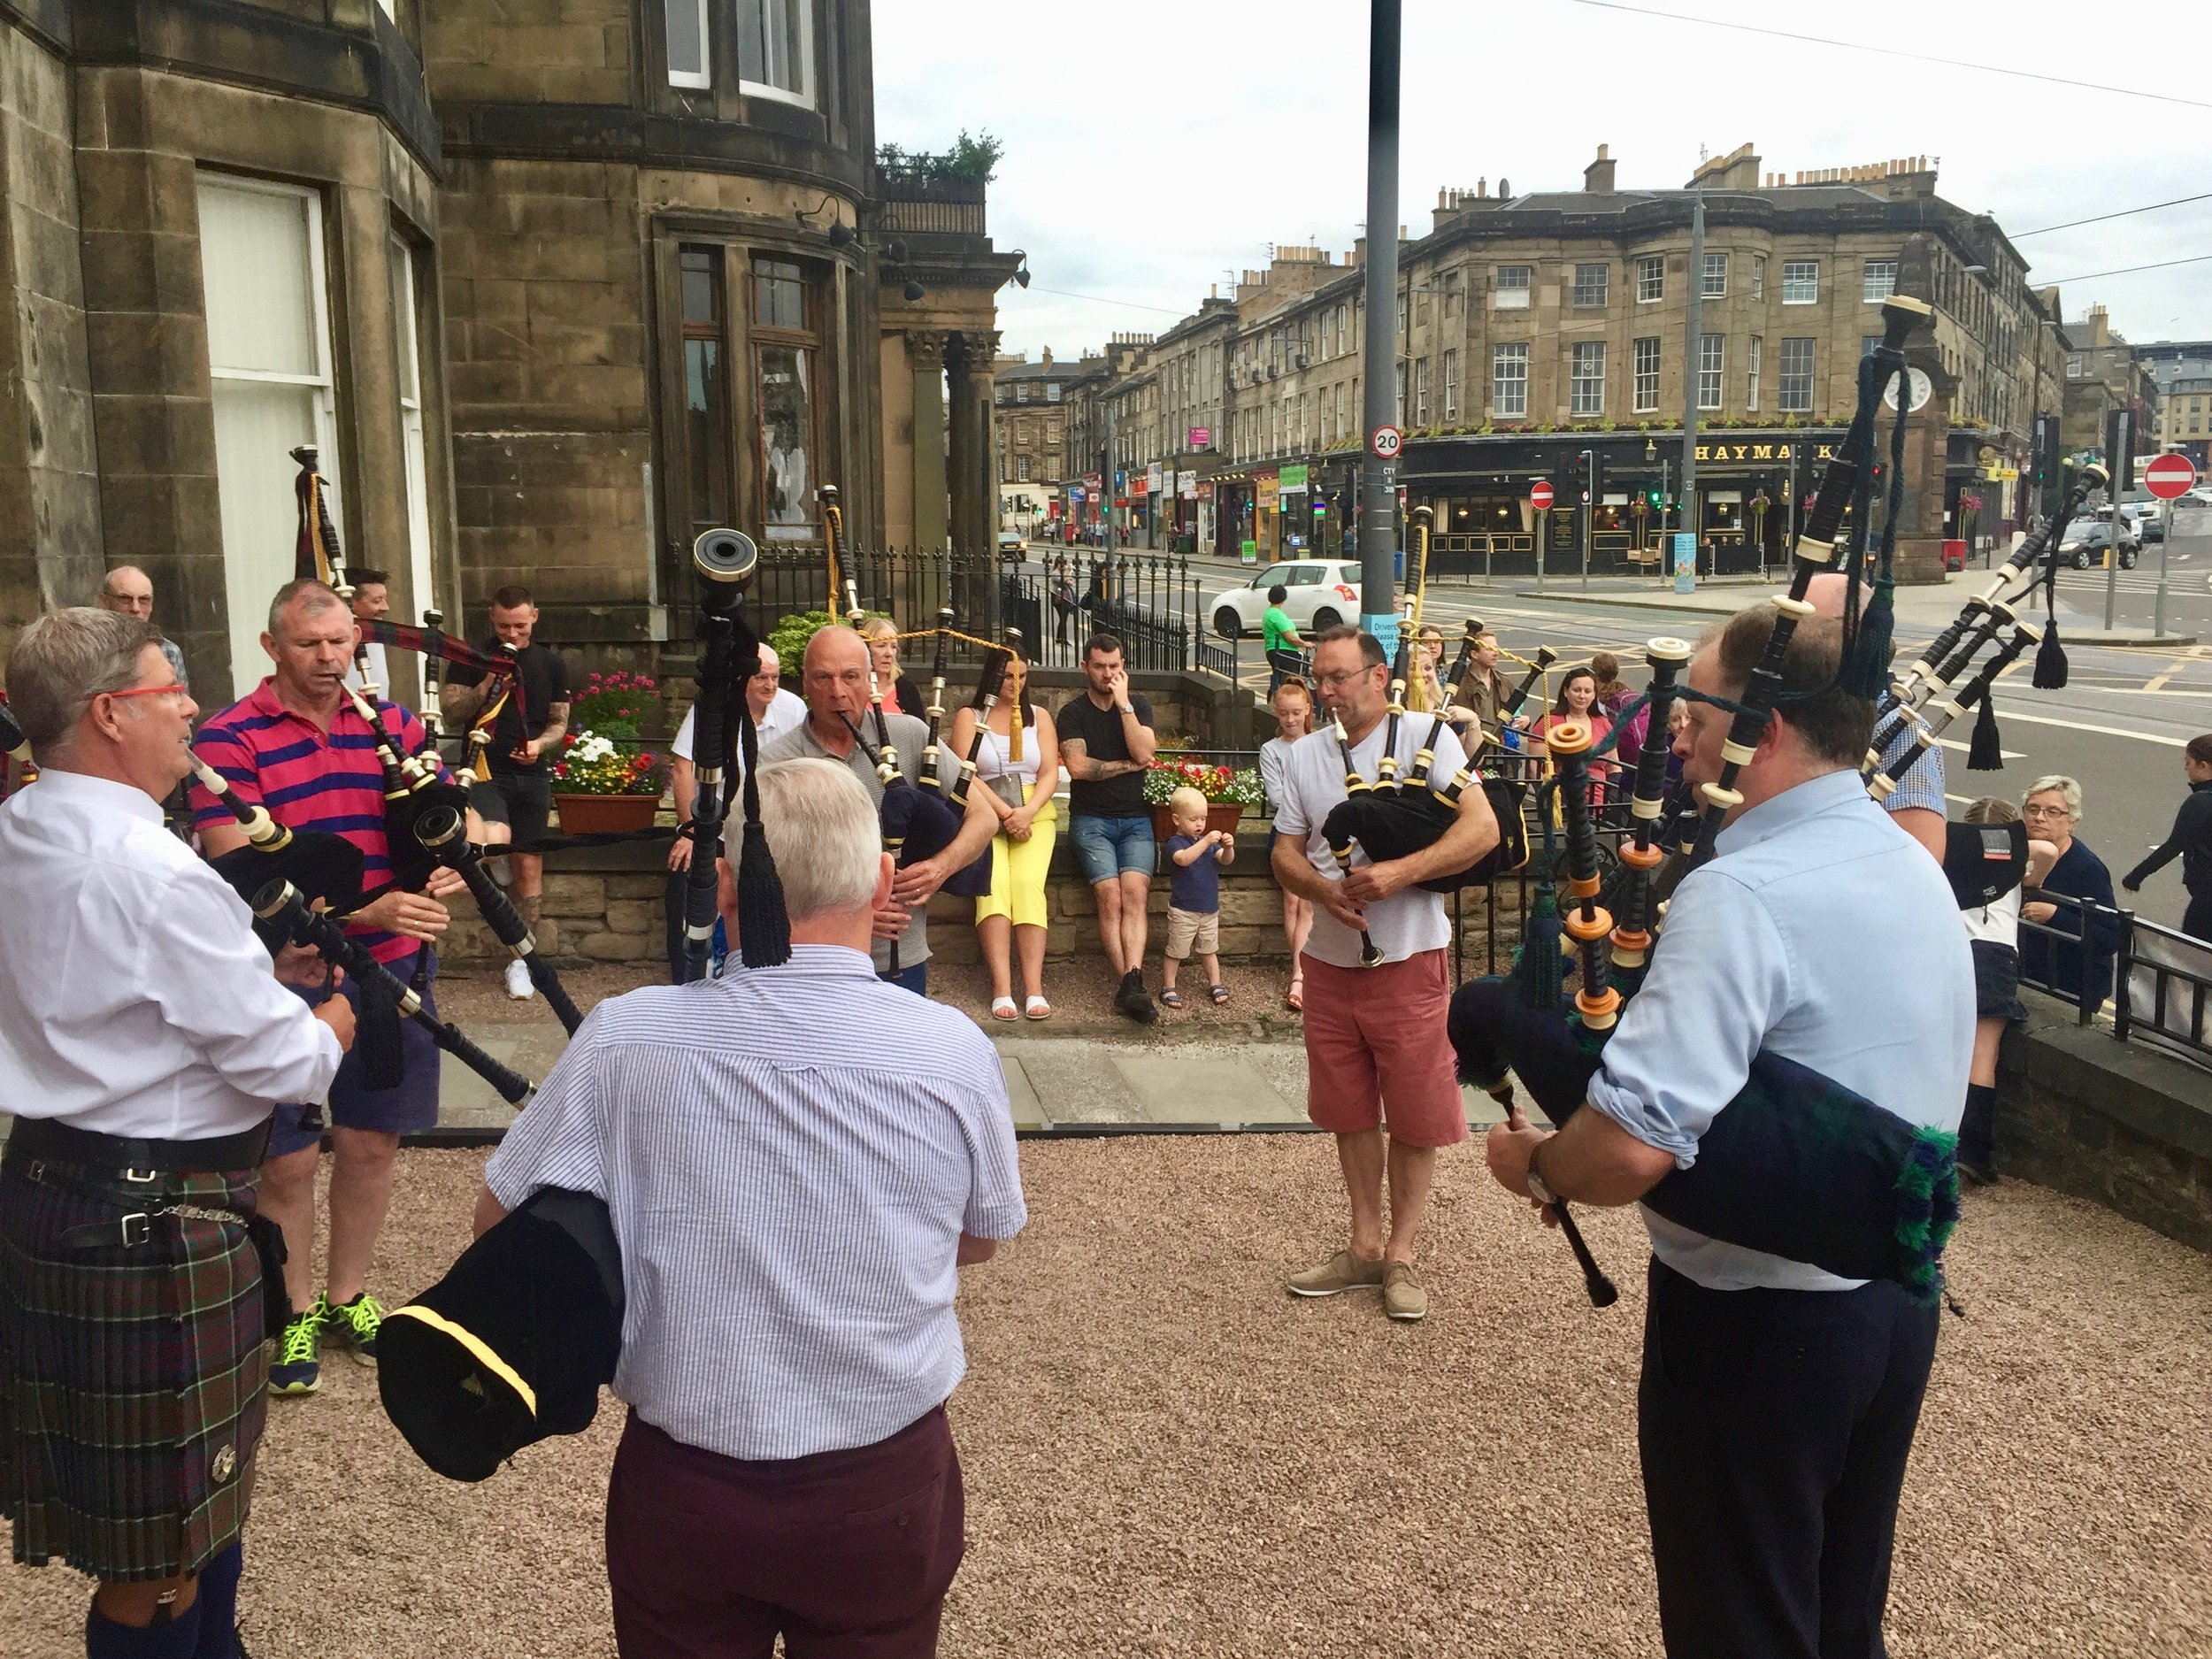 A Scottish summer allows the Eagles to play outside the Scots Guards Club Edinburgh